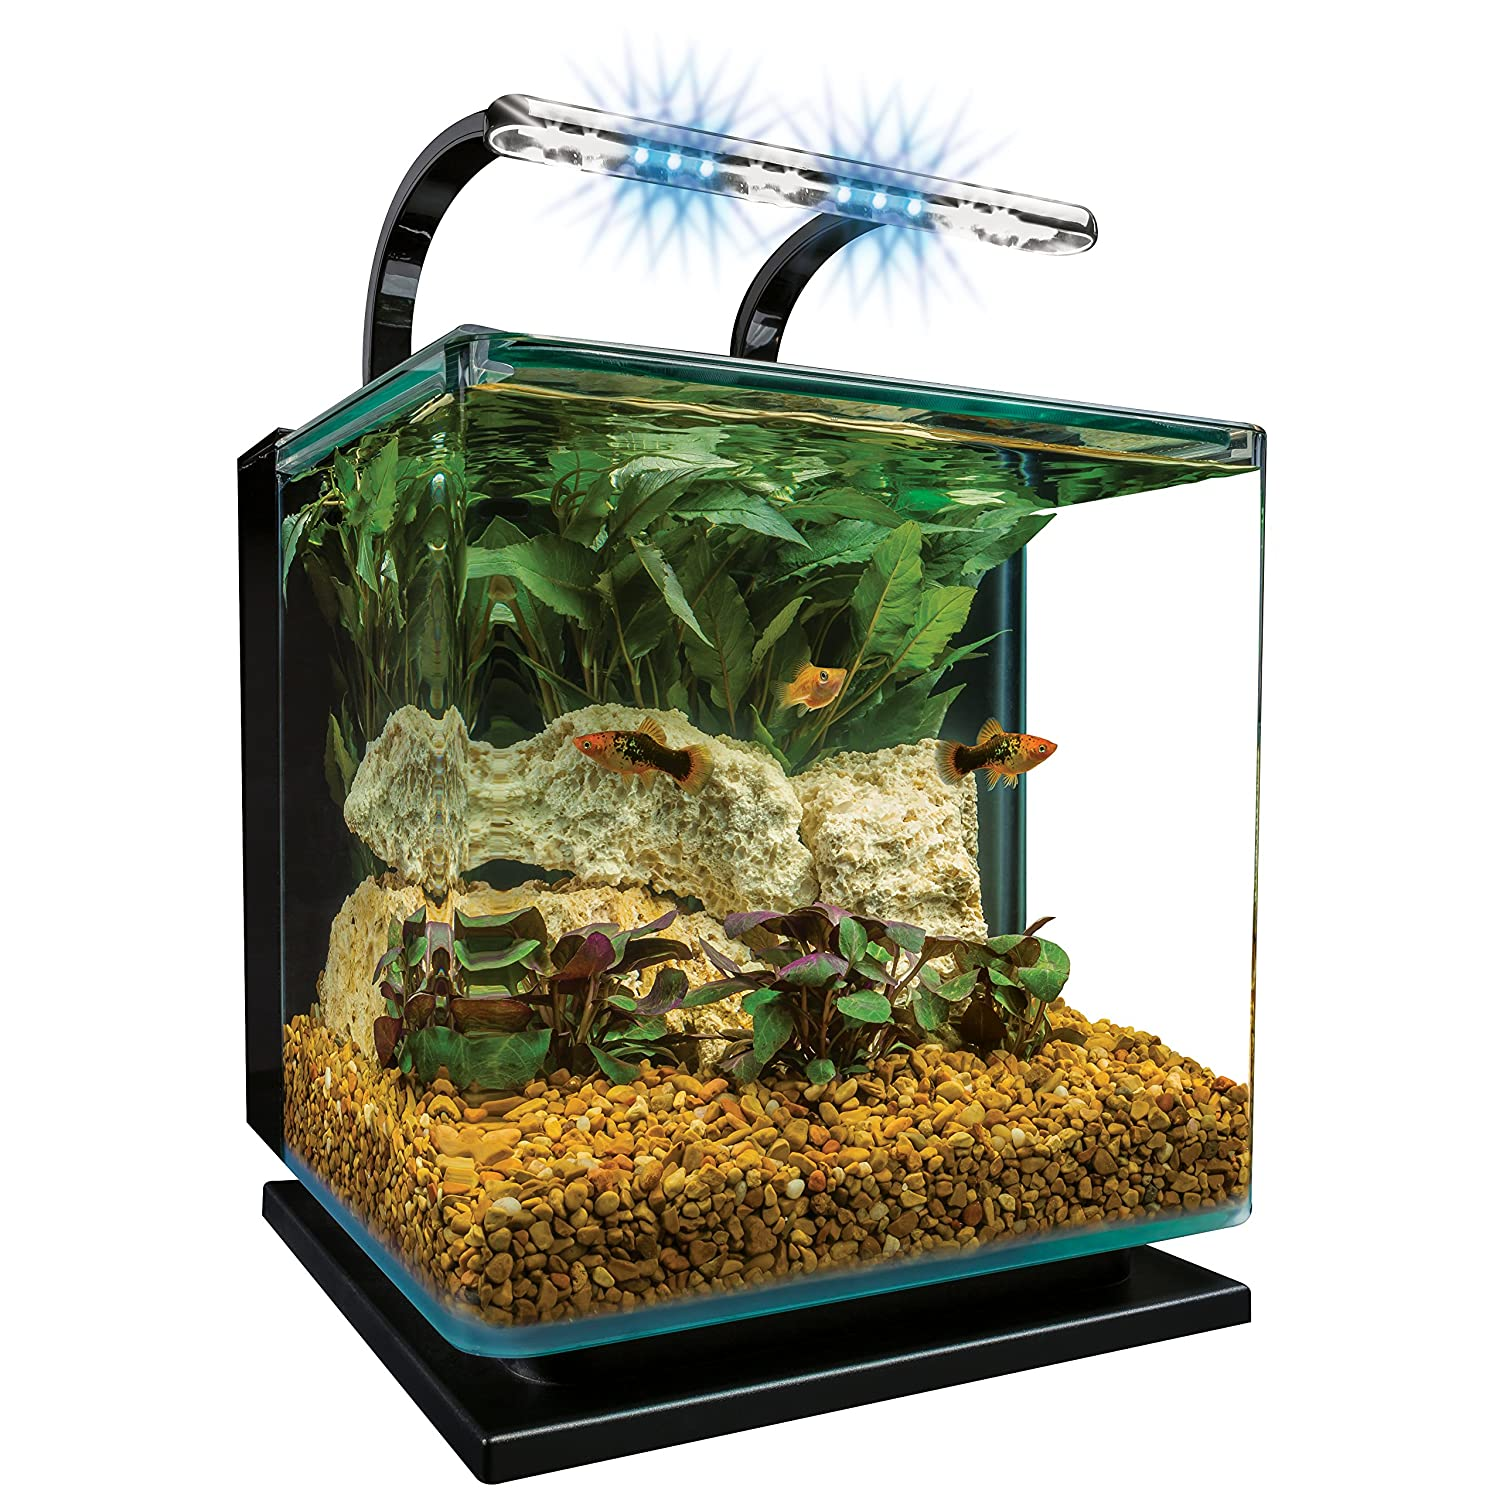 Fish aquarium just dial -